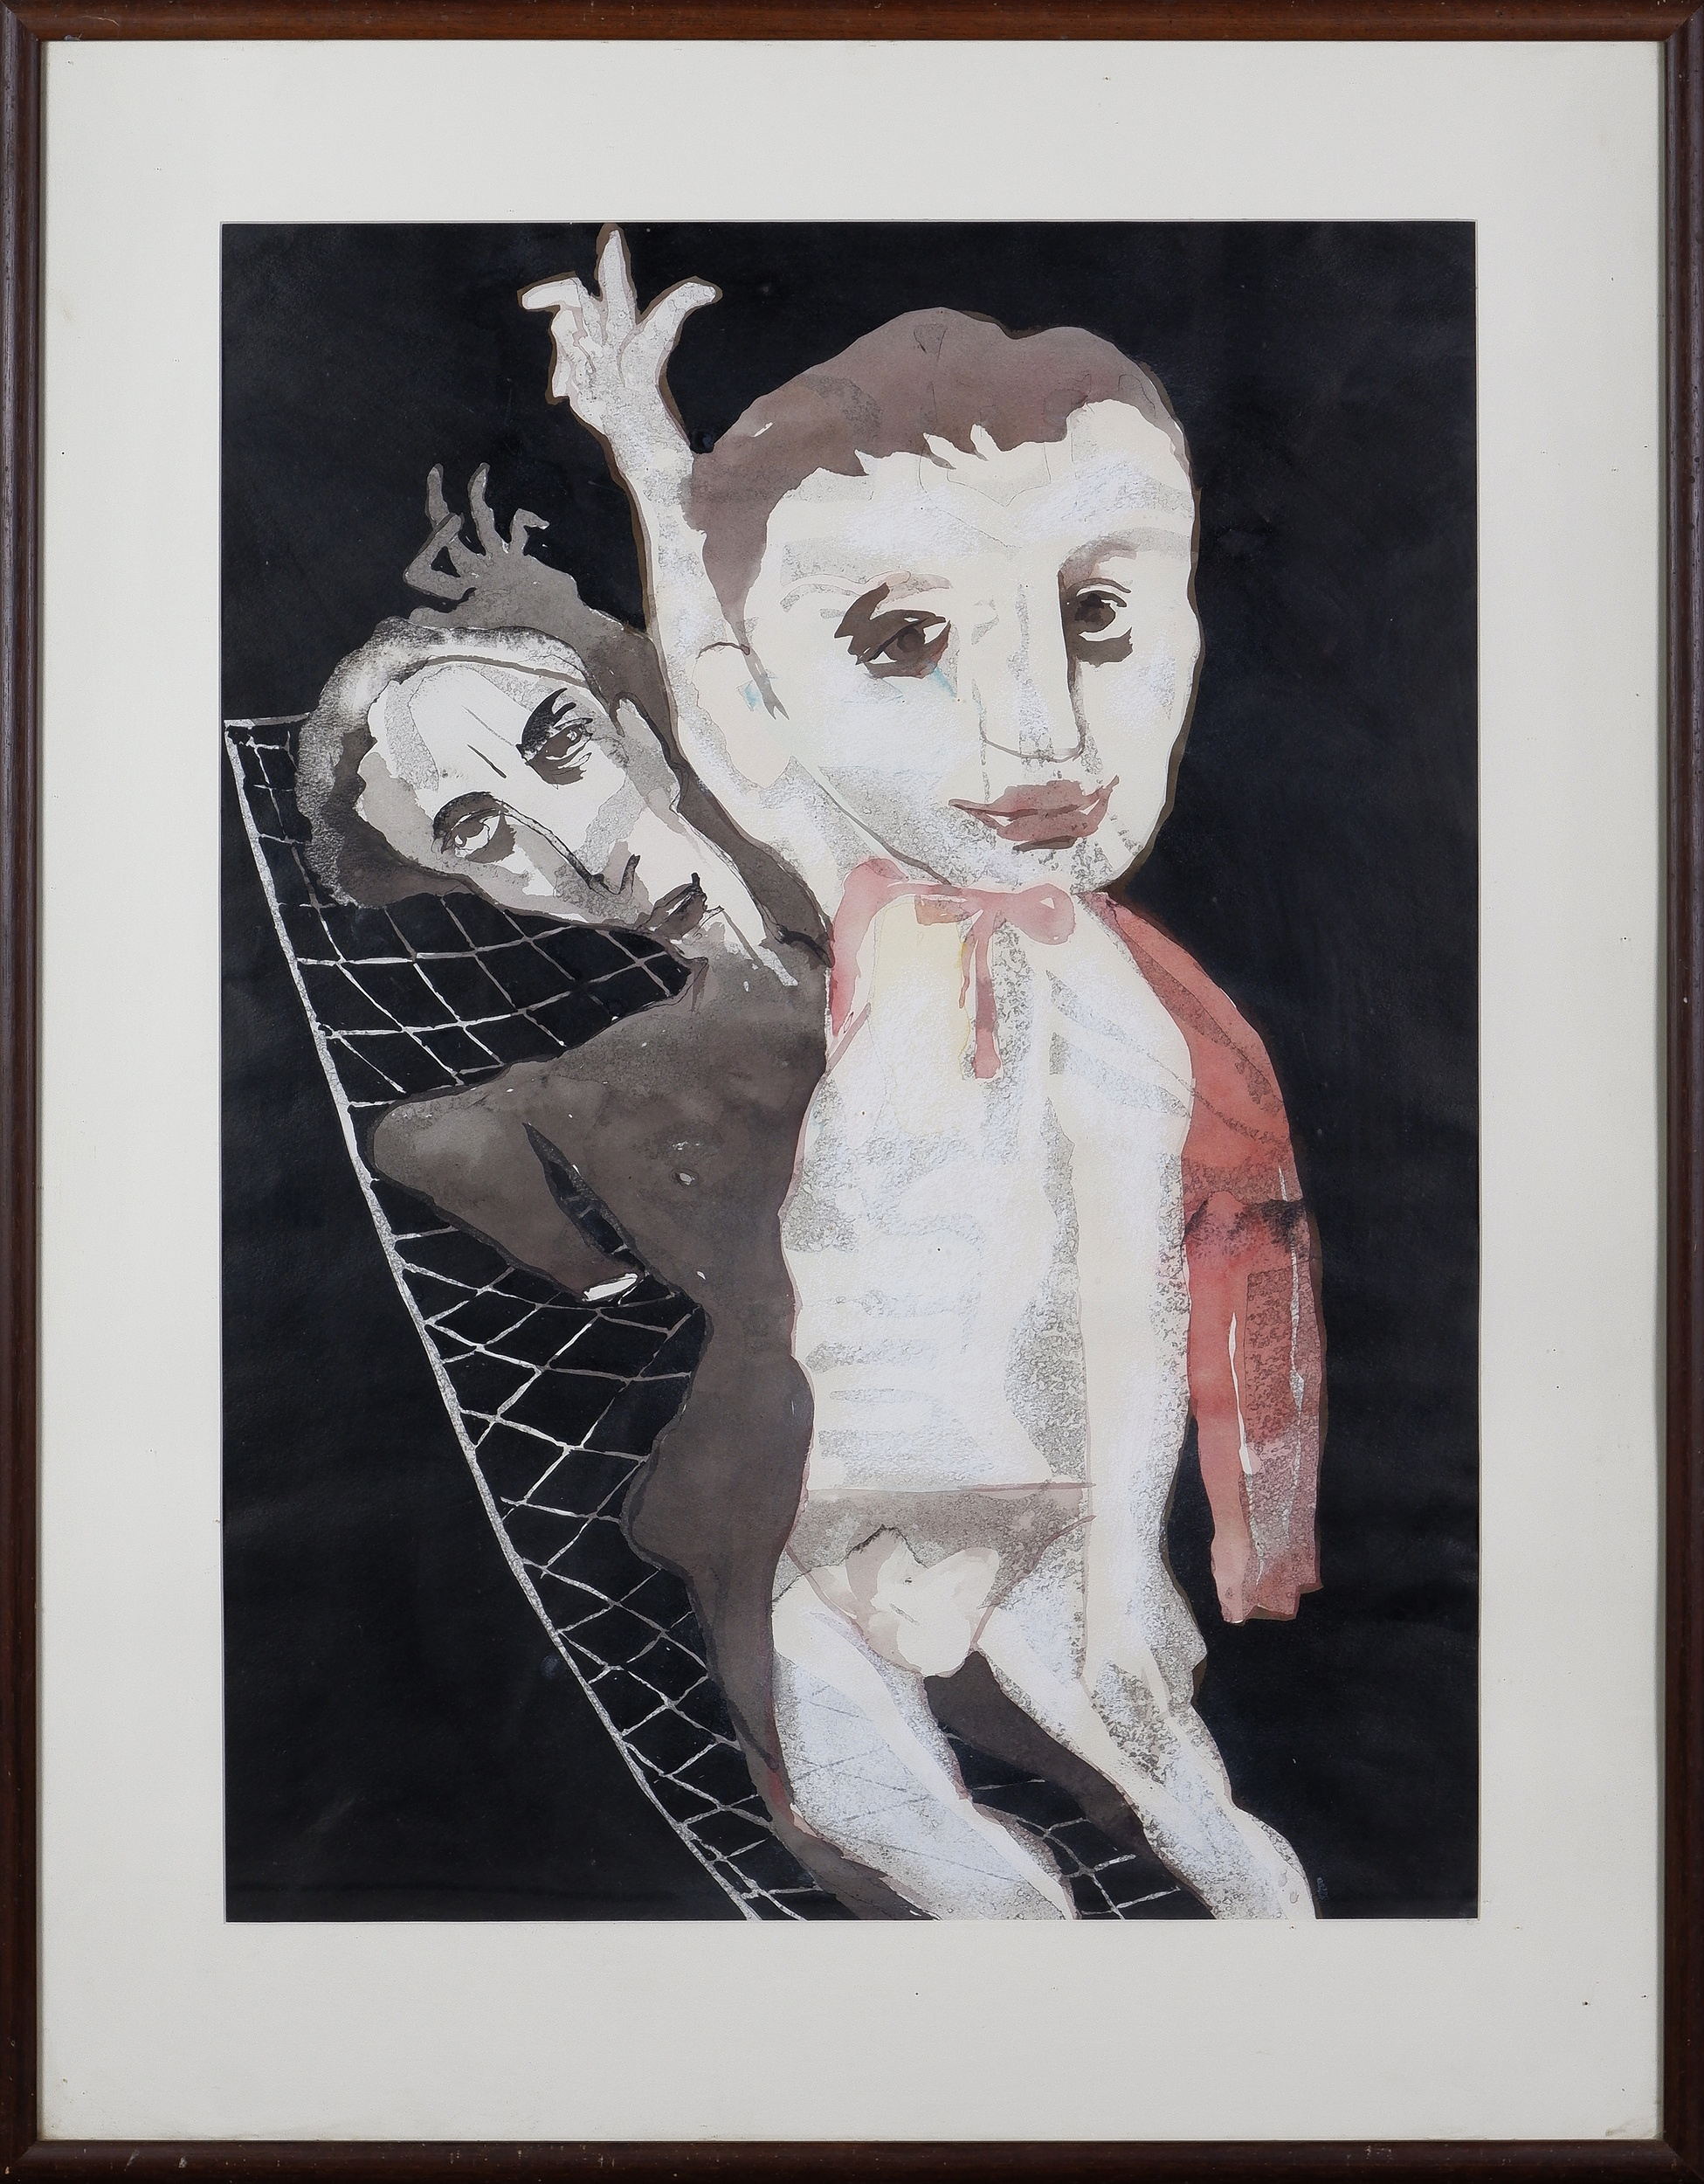 'Andrew Sibley (1933-2015), End of the Show, Watercolour on Paper'